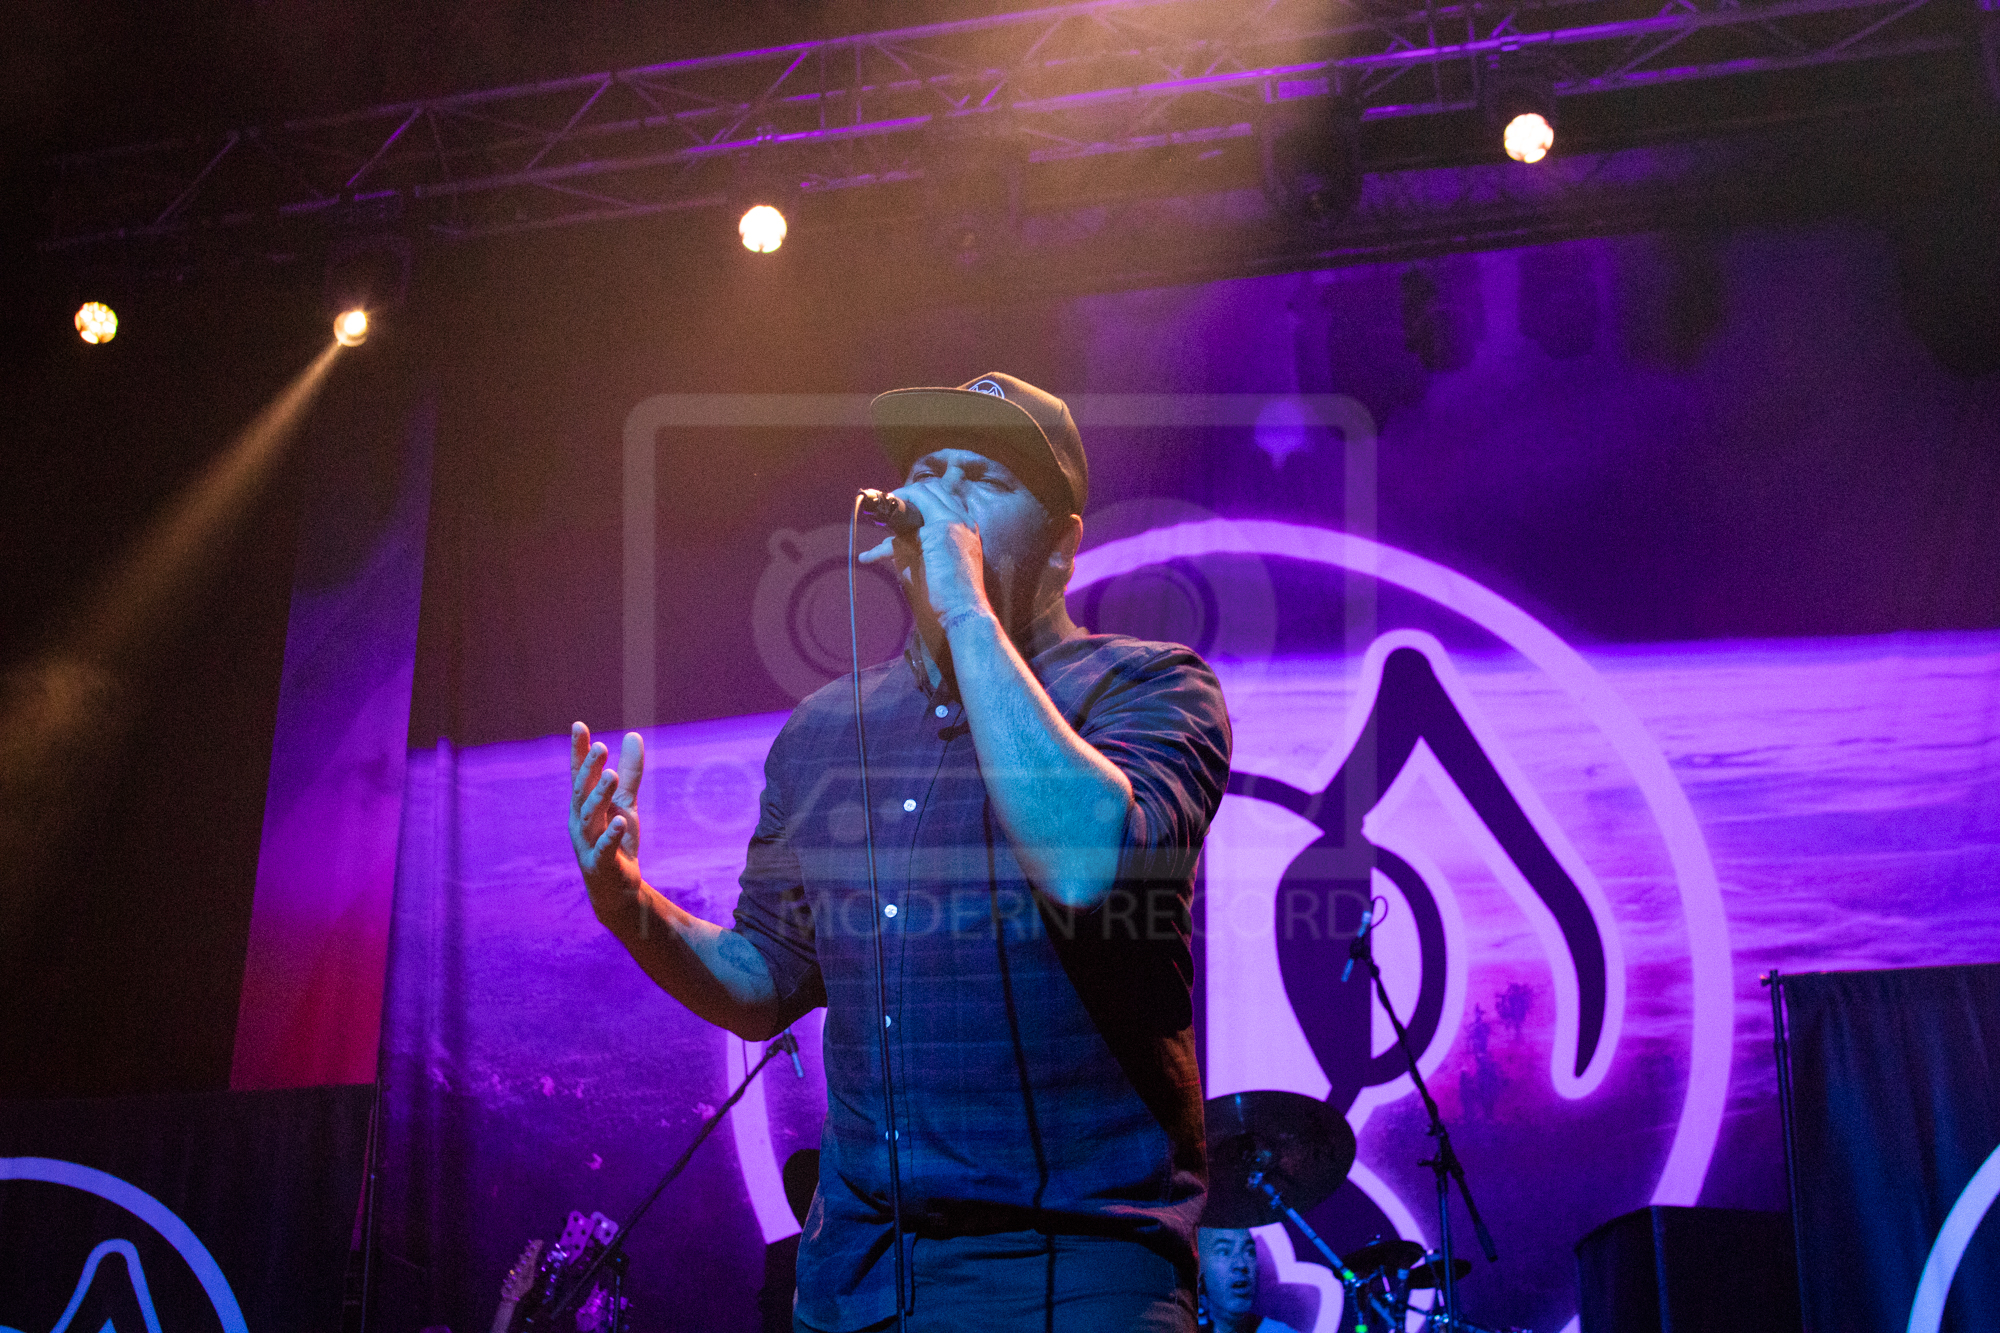 7 - Alien Ant Farm - O2 academy, Newcastle - 03-03-19 Picture by Will Gorman Photo-4001.JPG